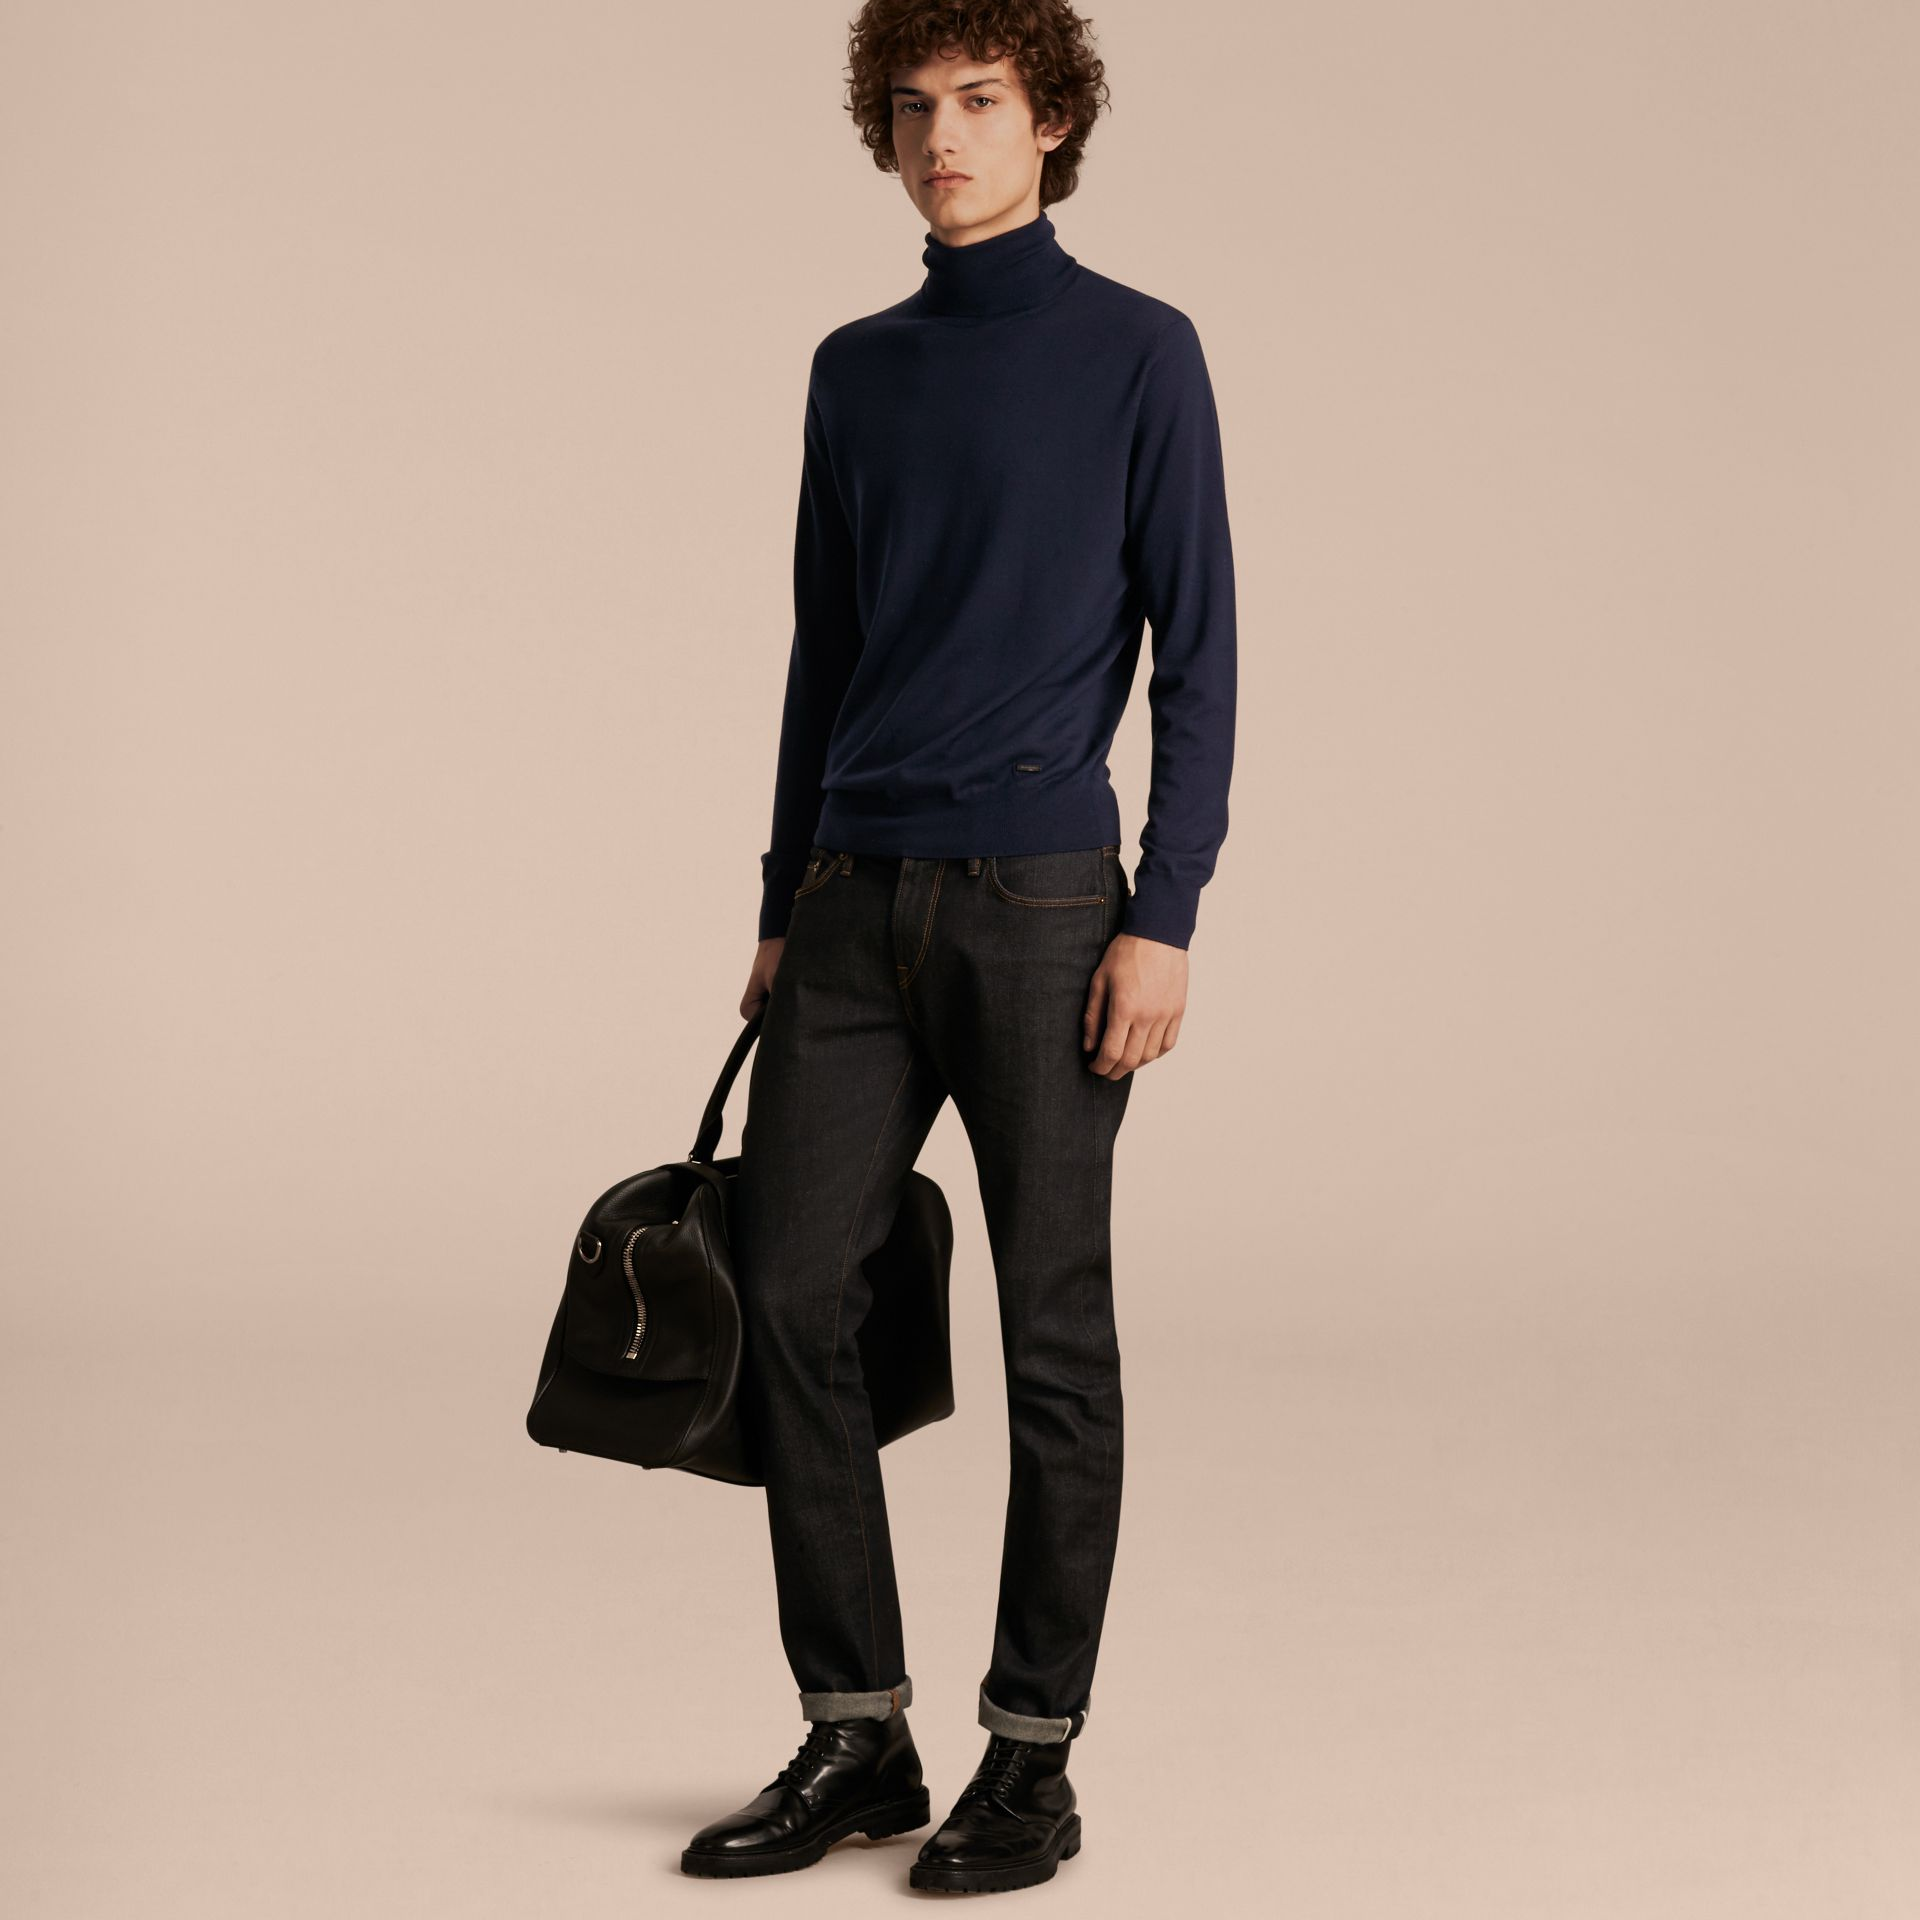 Navy Merino Wool Roll-neck Sweater Navy - gallery image 6